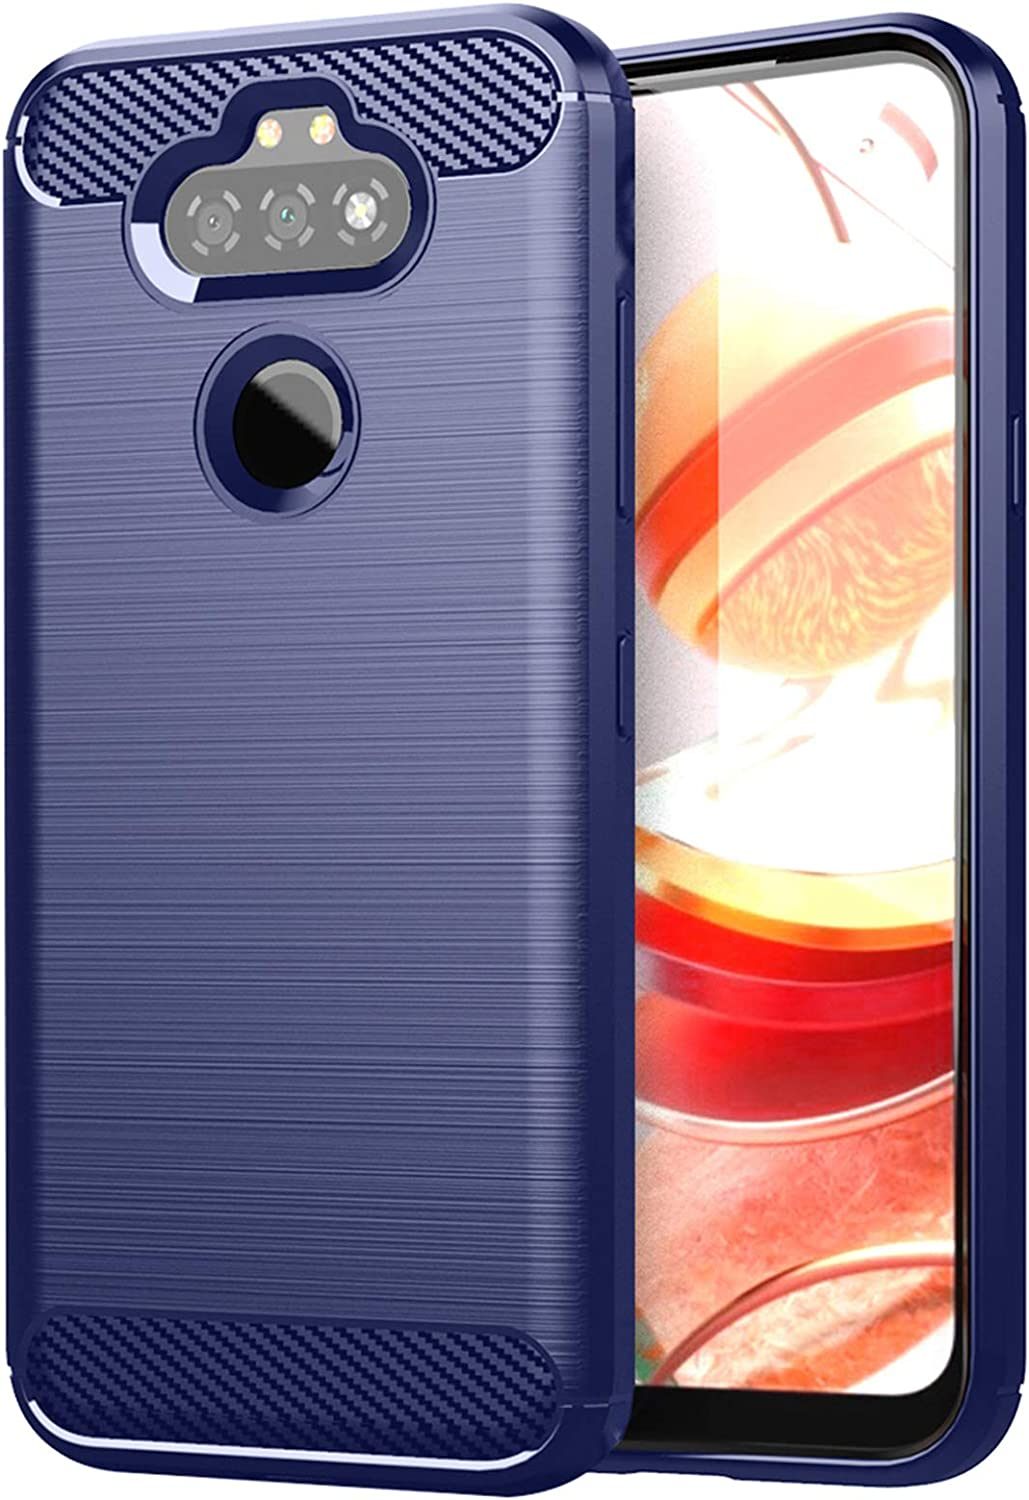 GSDCB Compatible with LG Aristo 5 Case, LG Aristo 5 Plus Case, LG K31 Case, LG Risio 4 Case, LG Phoenix 5 Case, LG Fortune 3 Case, LG K8X Case, Shockproof Phone Case with Soft TPU Slim Fit (Navy Blue)